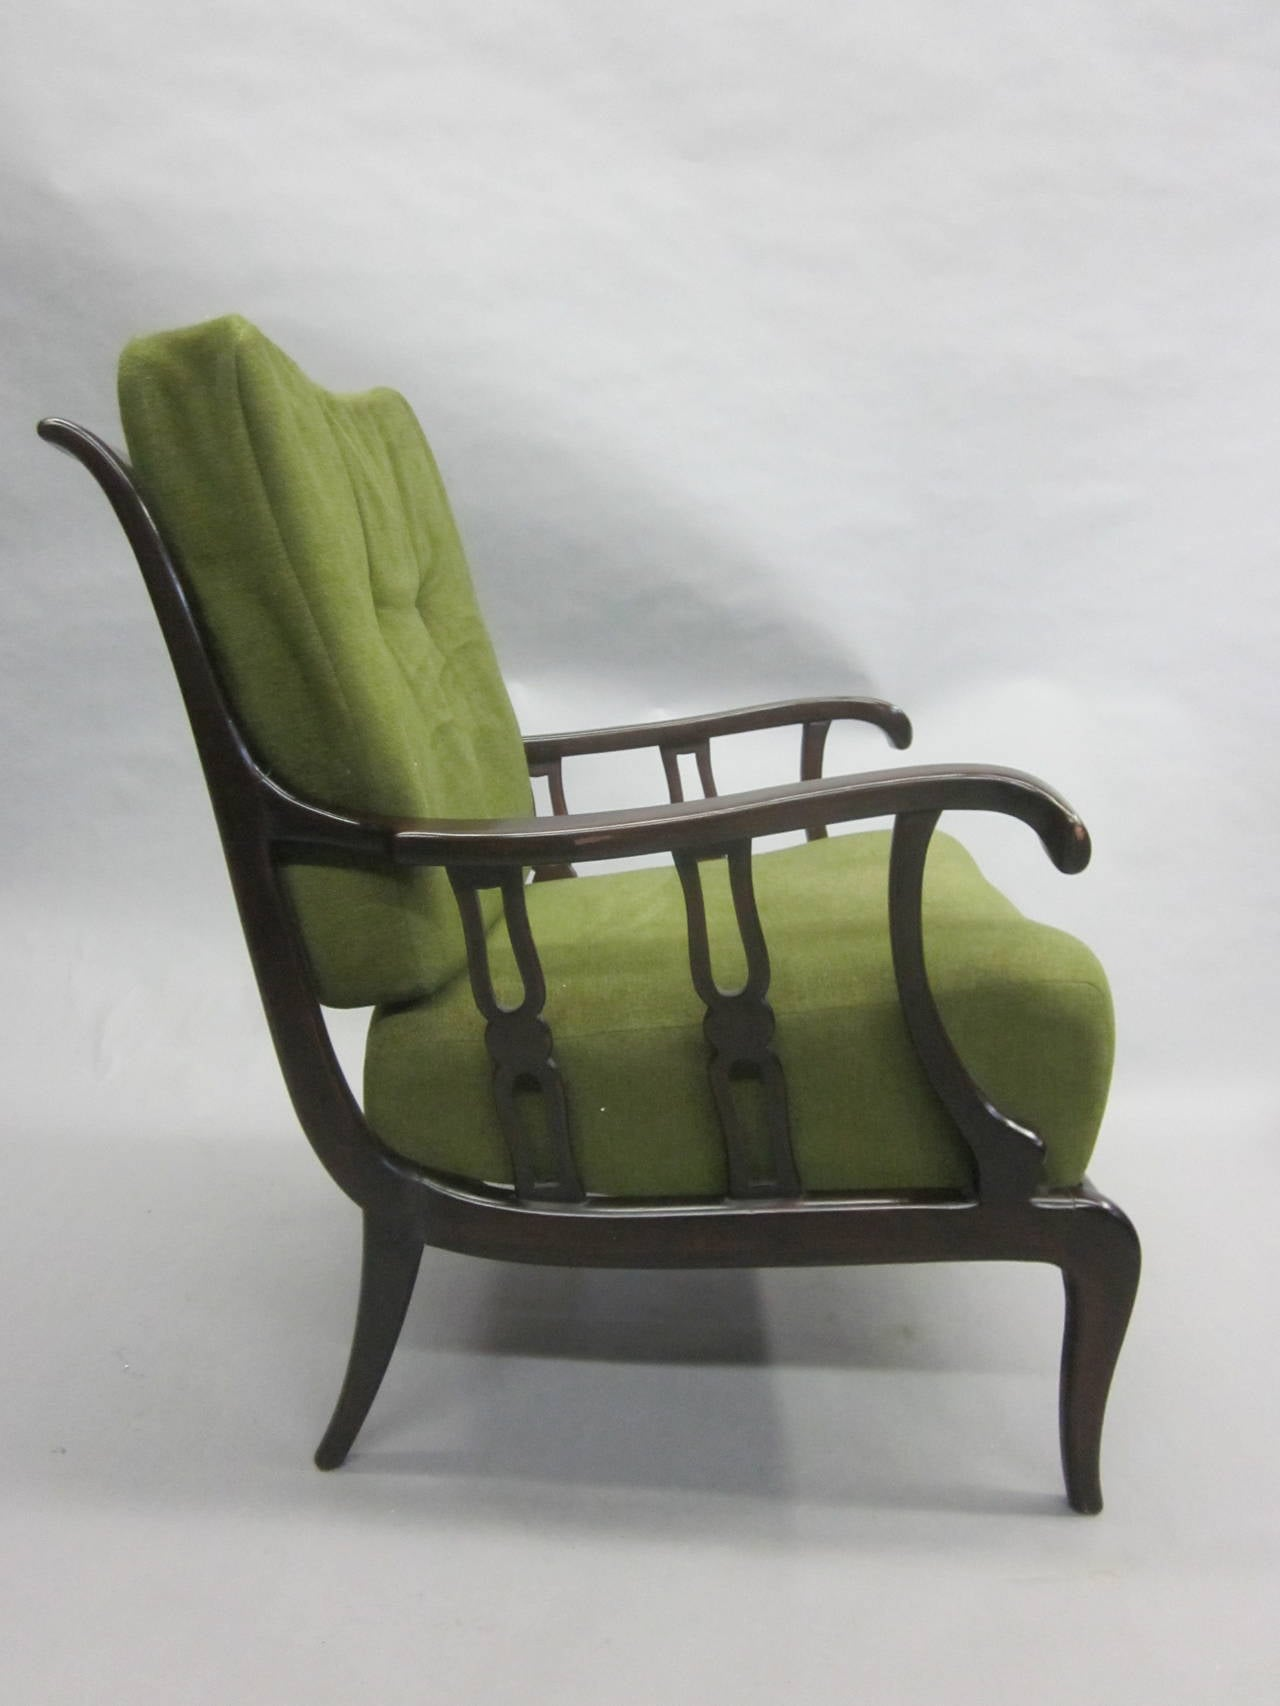 Pair of Italian Mid-Century Modern Neoclassical Lounge Chairs by Paolo Buffa In Good Condition For Sale In New York, NY